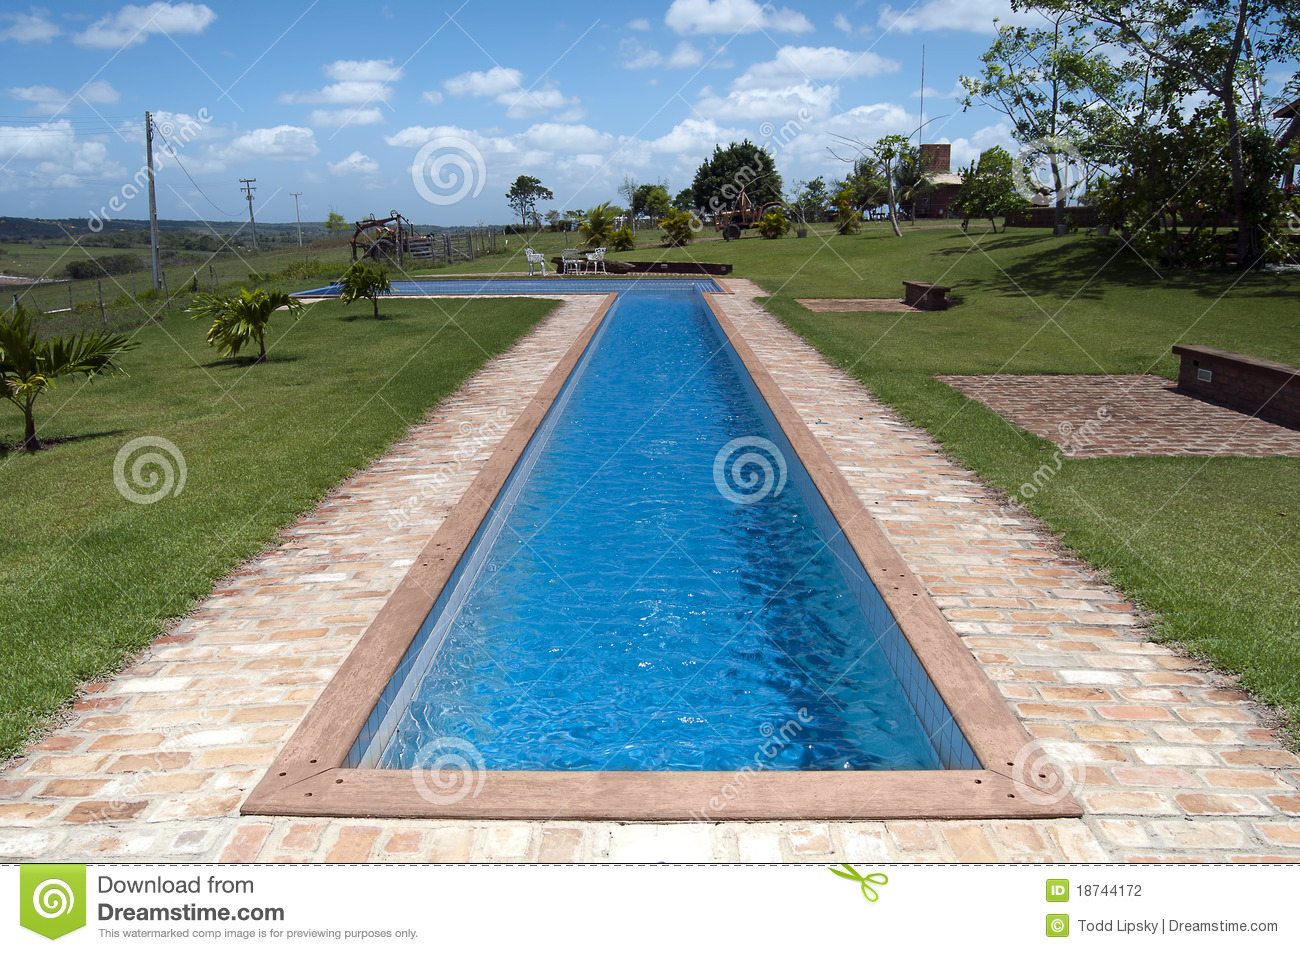 Swimming pool stock photography image 18744172 - Swimming pool swimming pool swimming pool ...